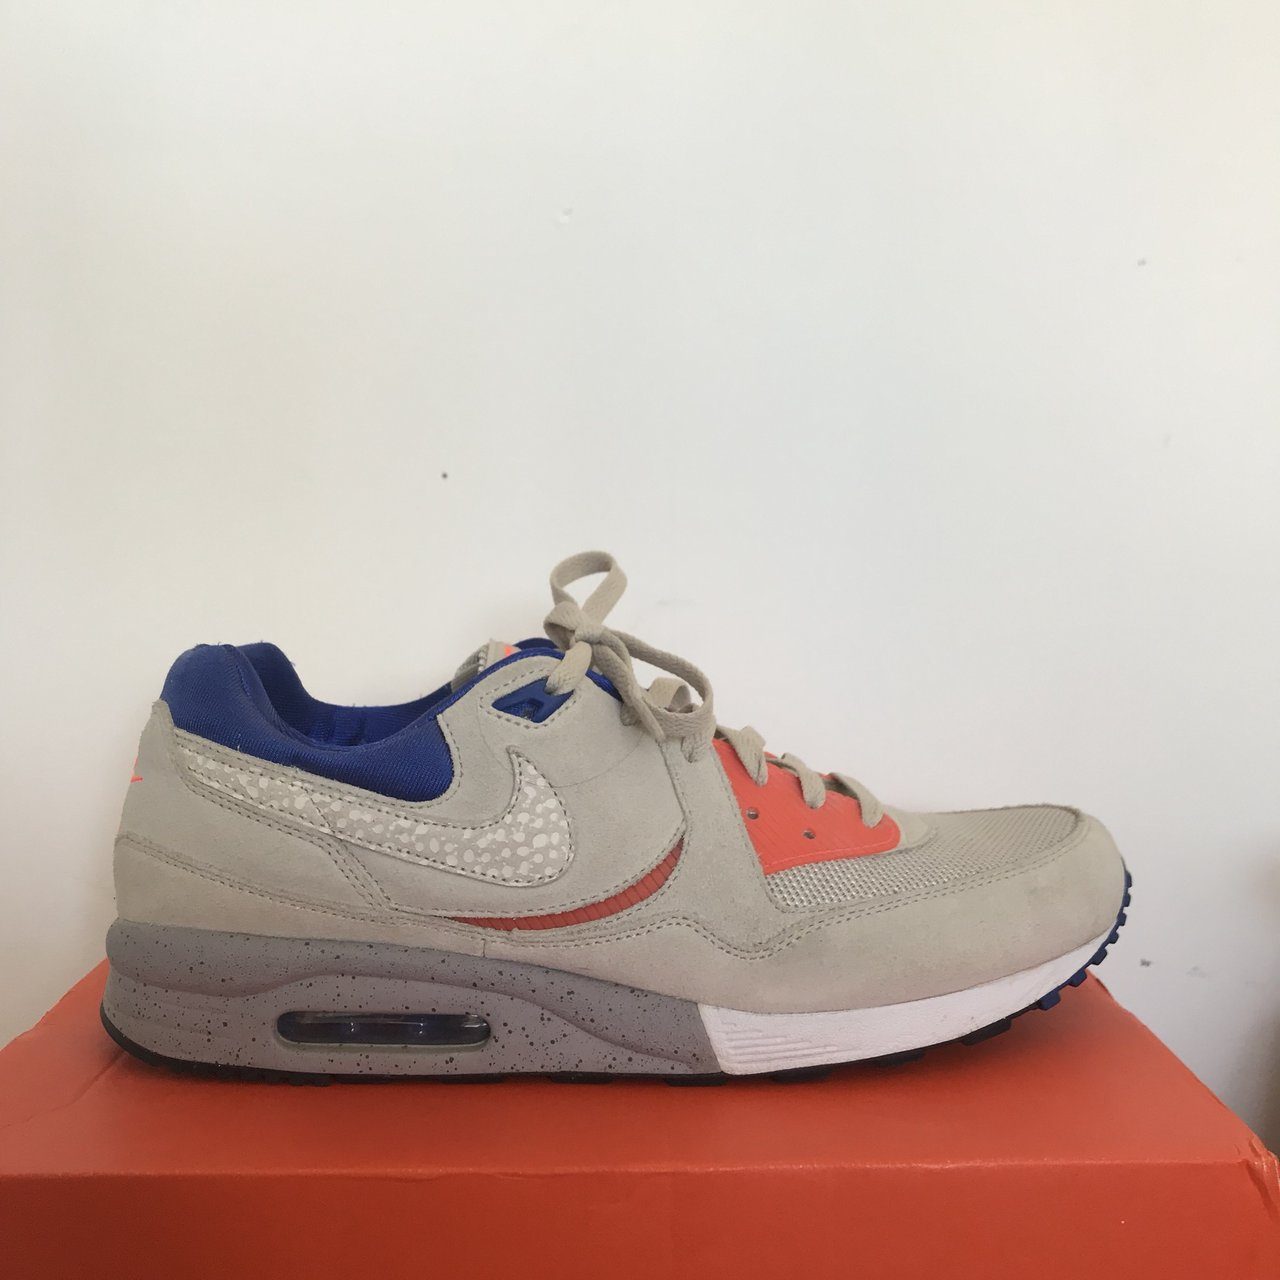 e35749f607 @caramelised_golf. 9 months ago. Brighton, United Kingdom. Nike air max  light, Size? Exclusive. Urban Safari pack, Desert sand ...